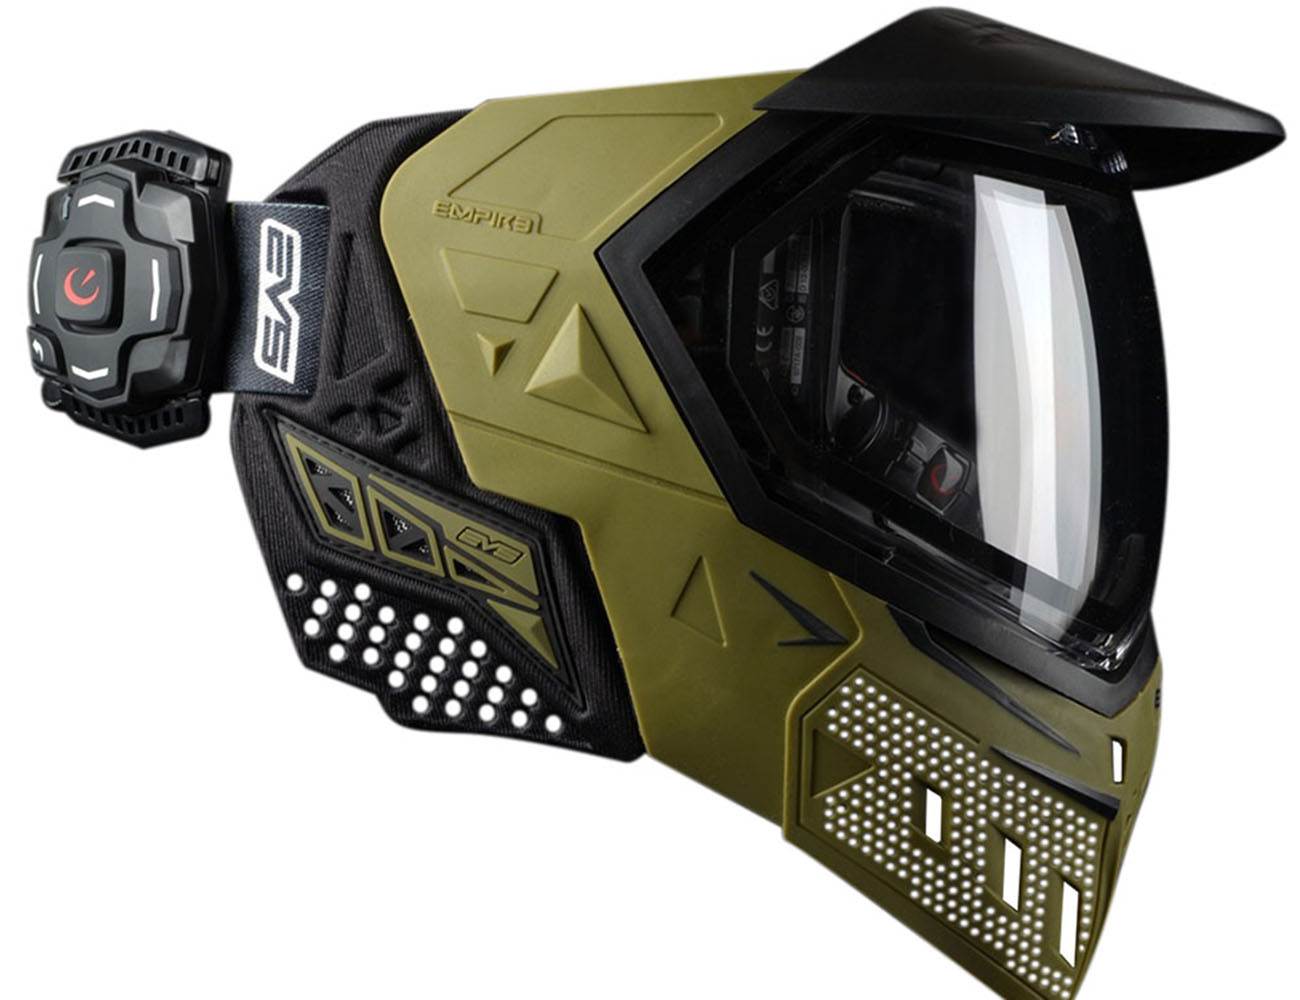 Empire EVS Heads-Up Display for Paintball